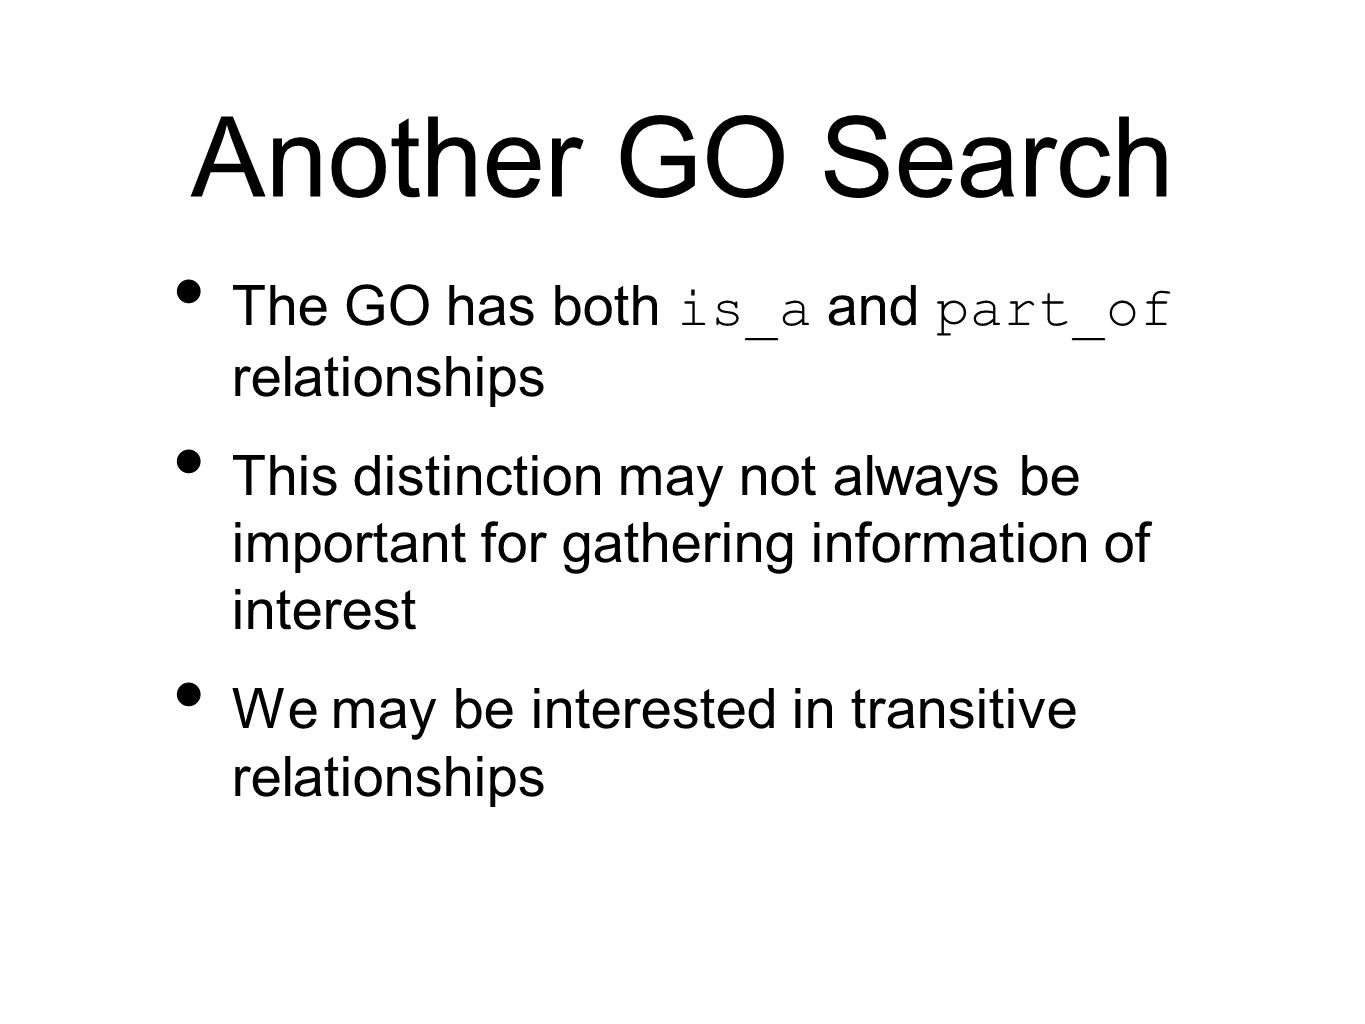 Another GO Search The GO has both is_a and part_of relationships This distinction may not always be important for gathering information of interest We may be interested in transitive relationships